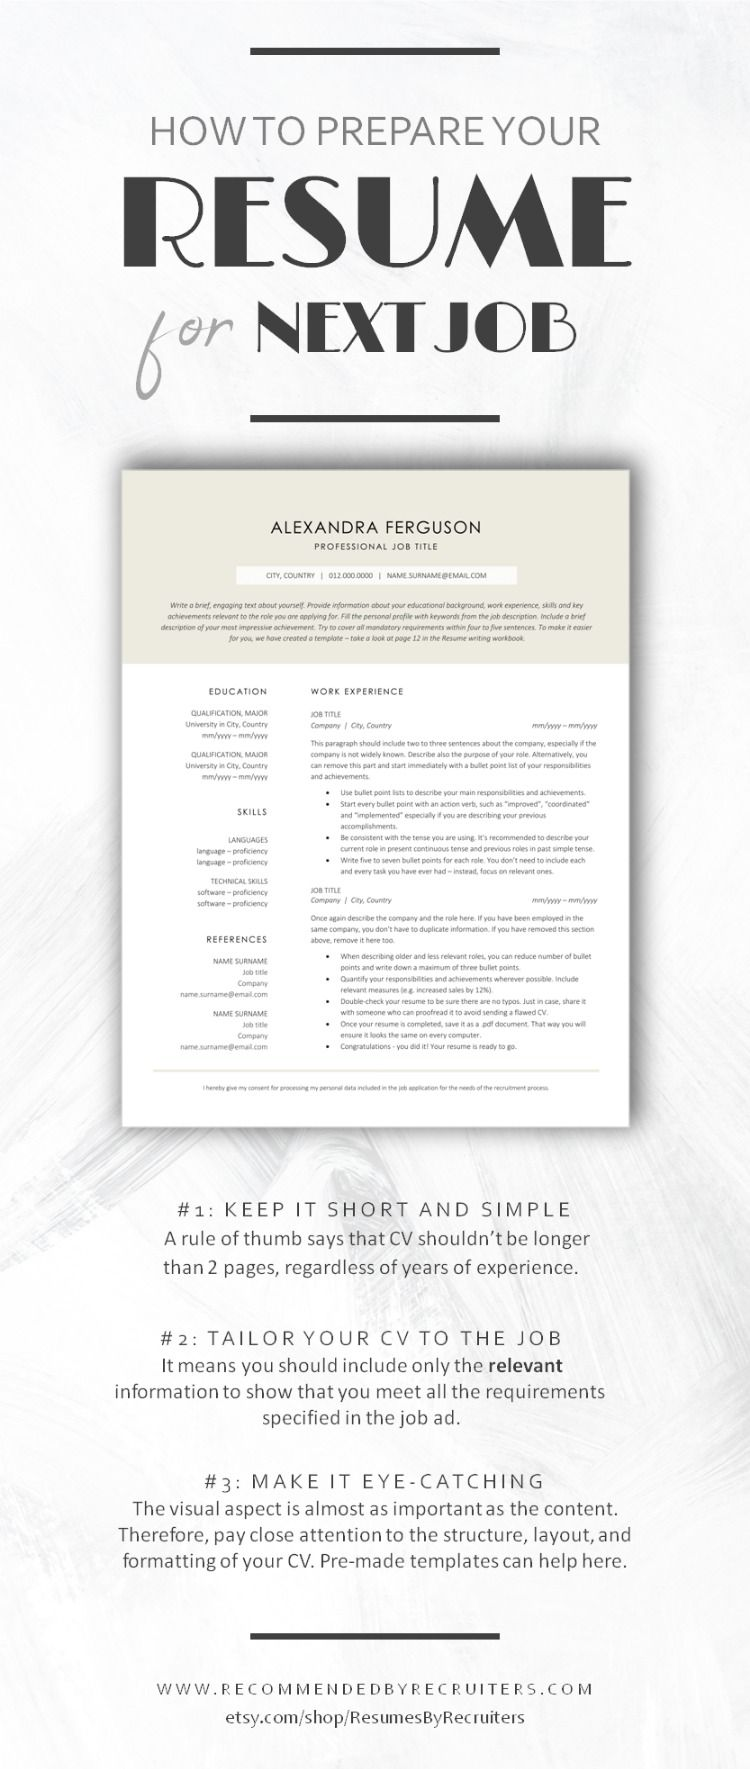 How to Prepare Resume for the Next Job CV Writing Tips